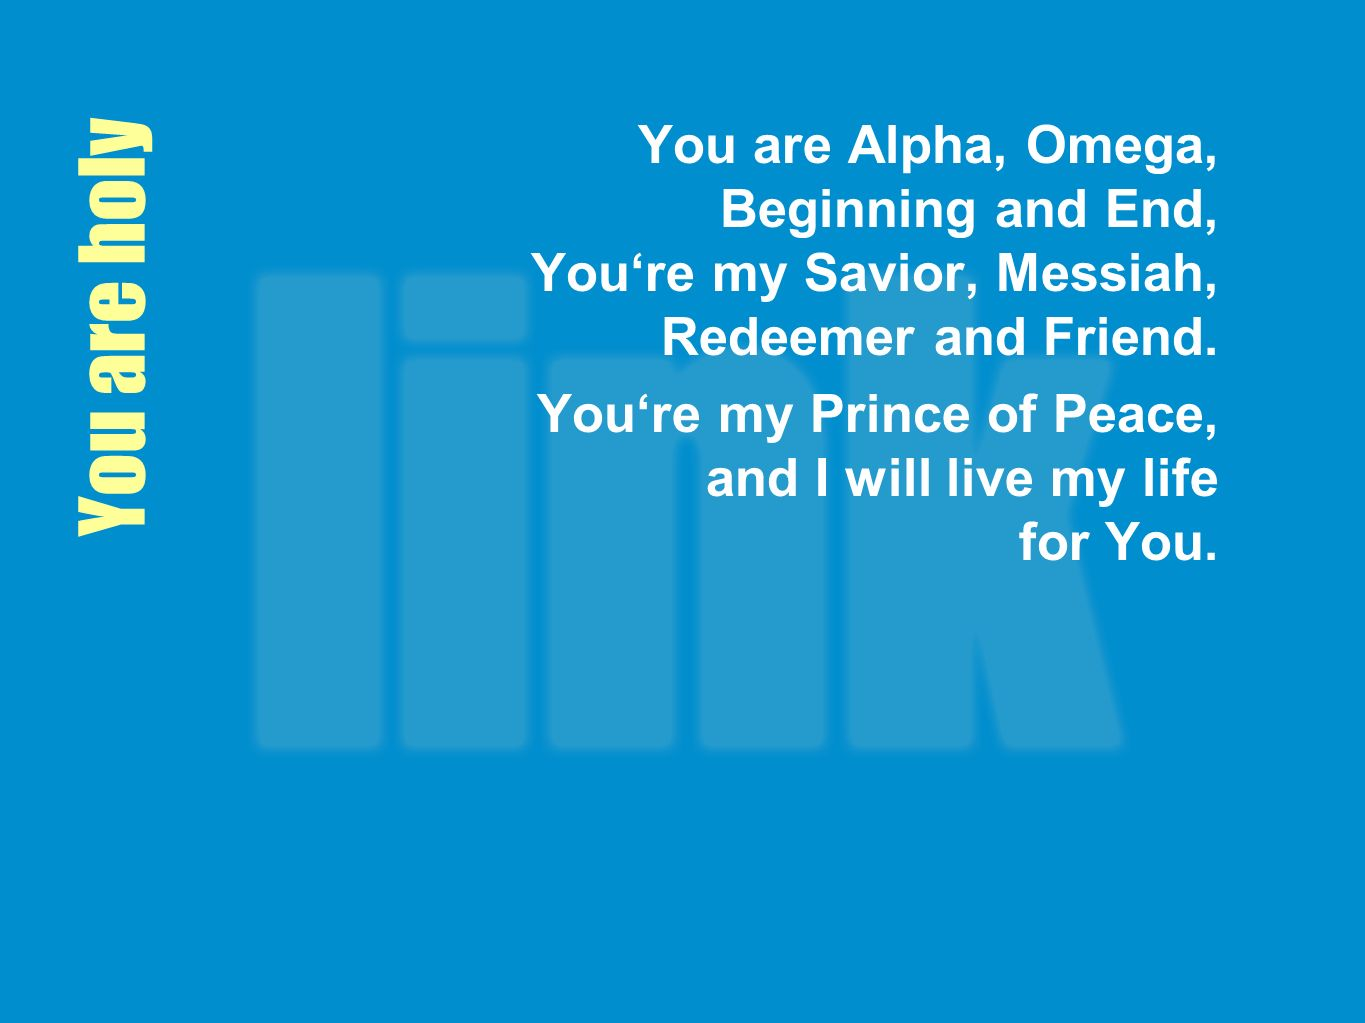 You are holy You are Alpha, Omega, Beginning and End, Youre my Savior, Messiah, Redeemer and Friend.